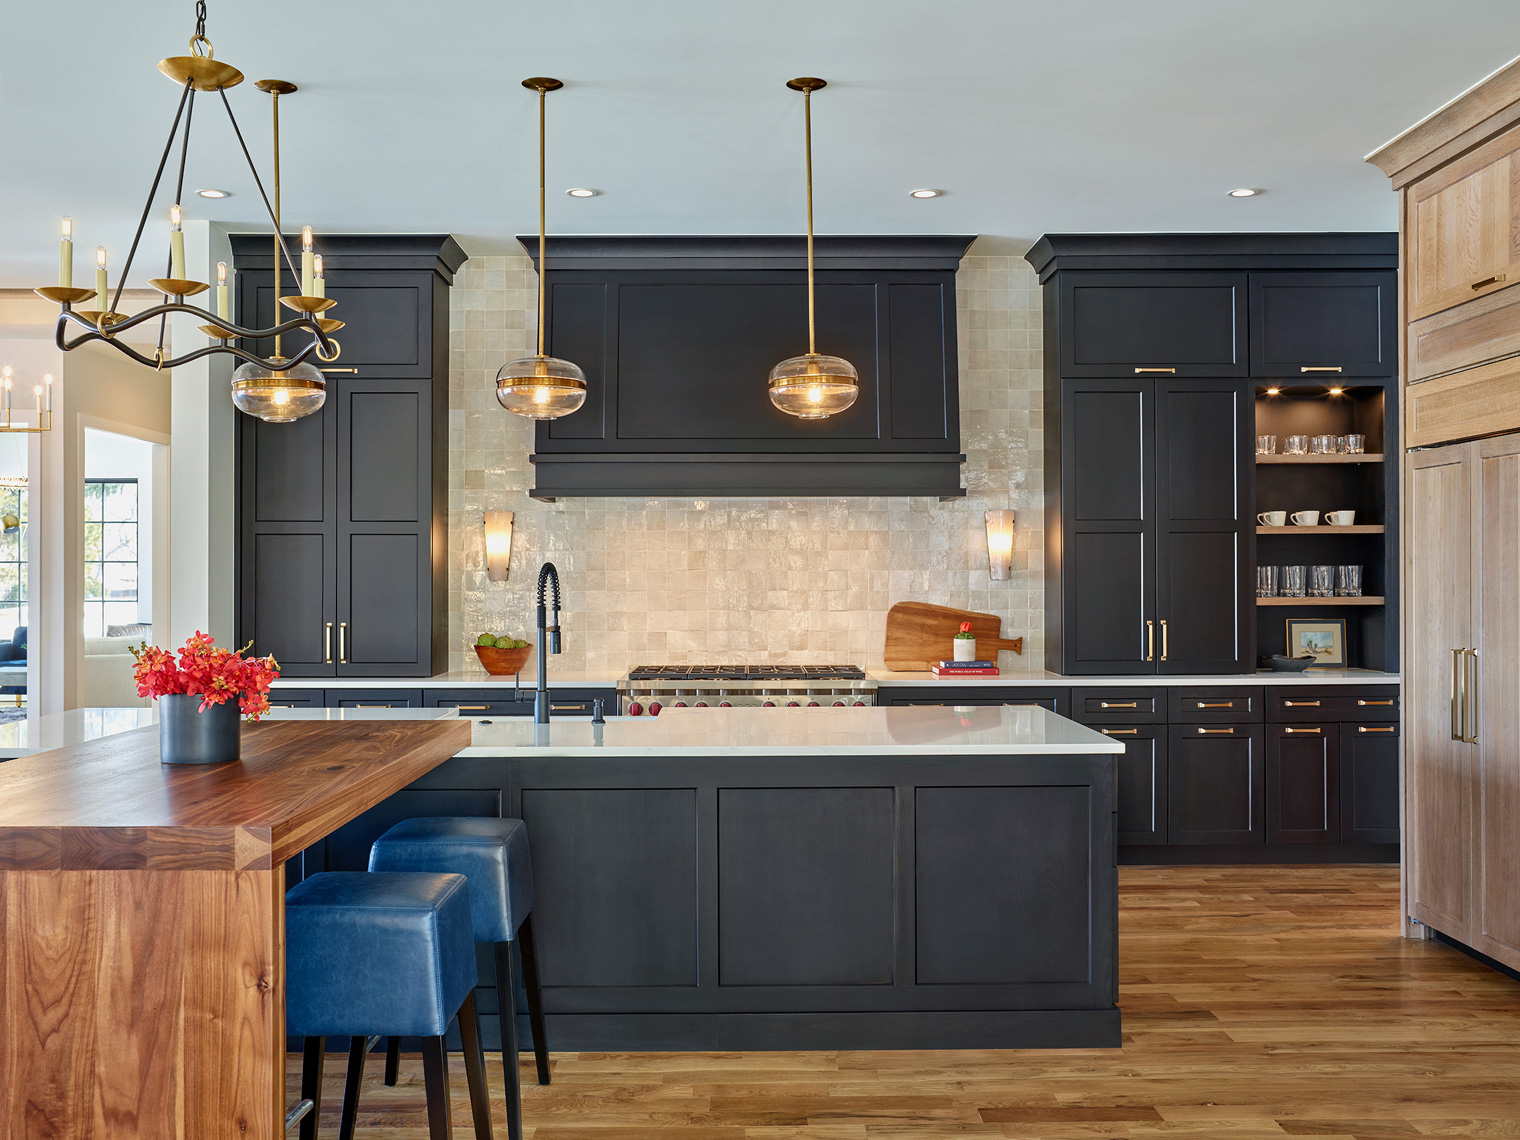 WEB_LOWRES_pamchelleint_5180E2nd_kitchen_26946